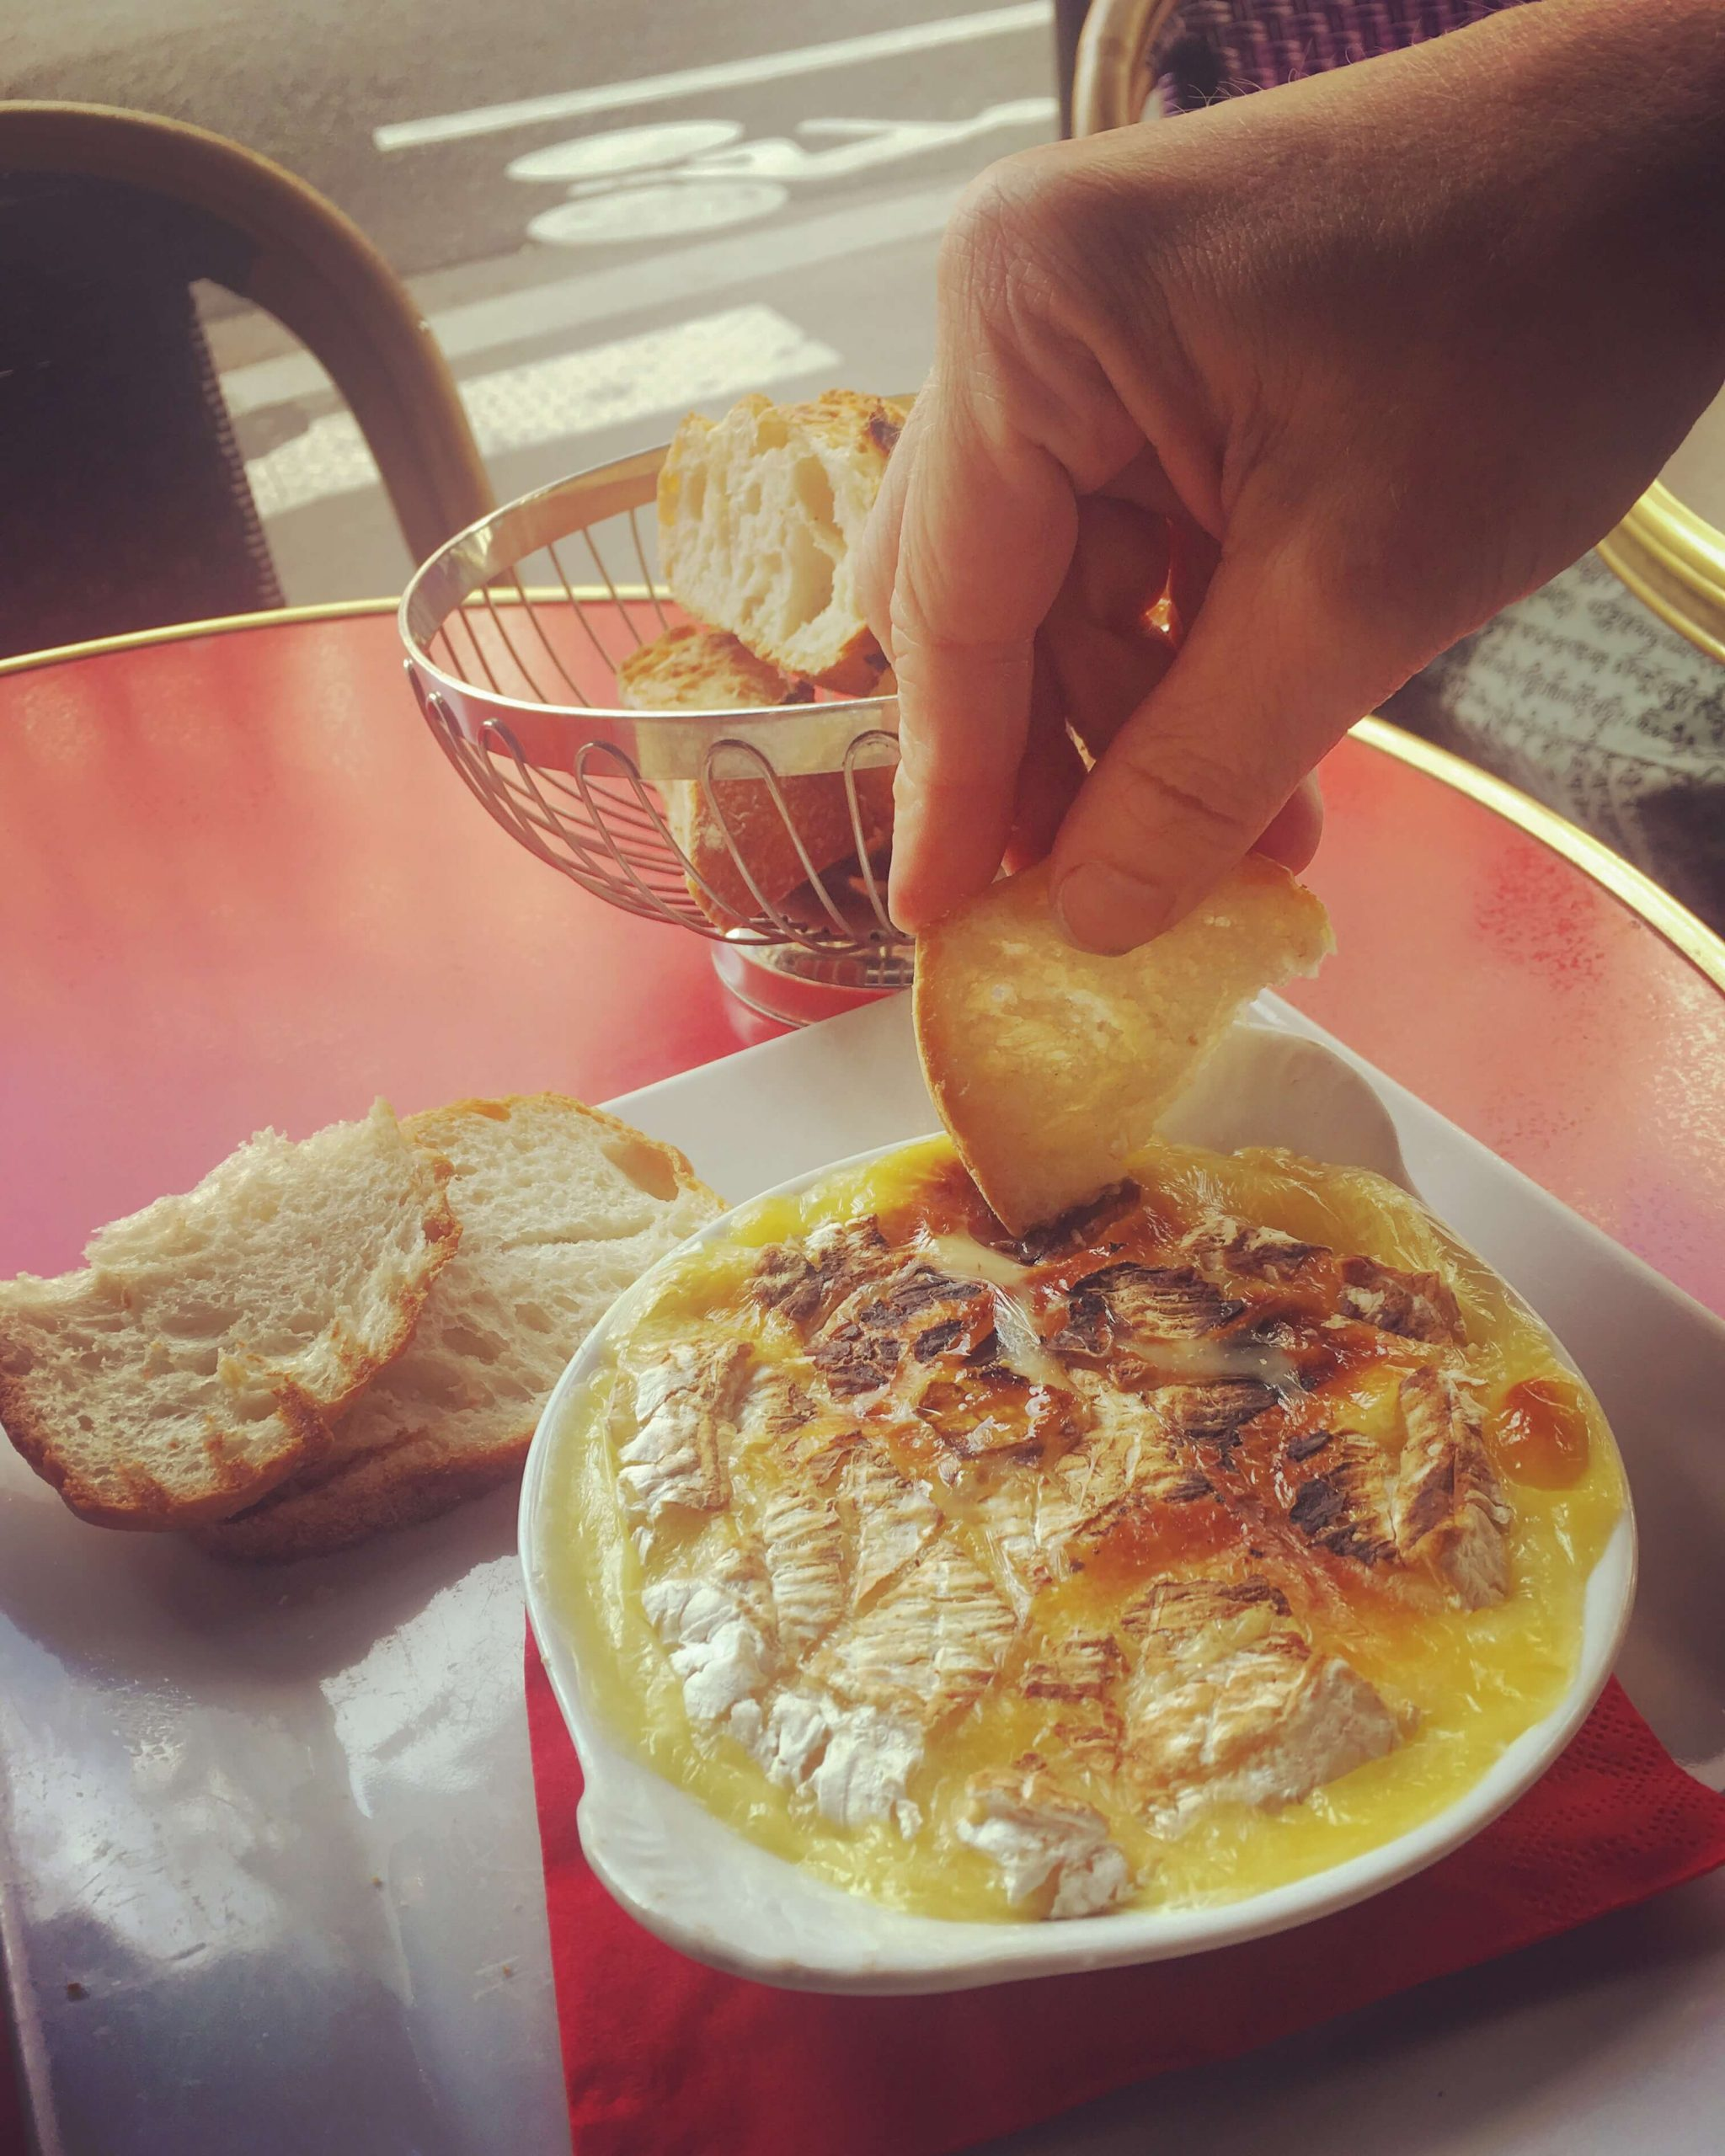 Baked camembert with croutons